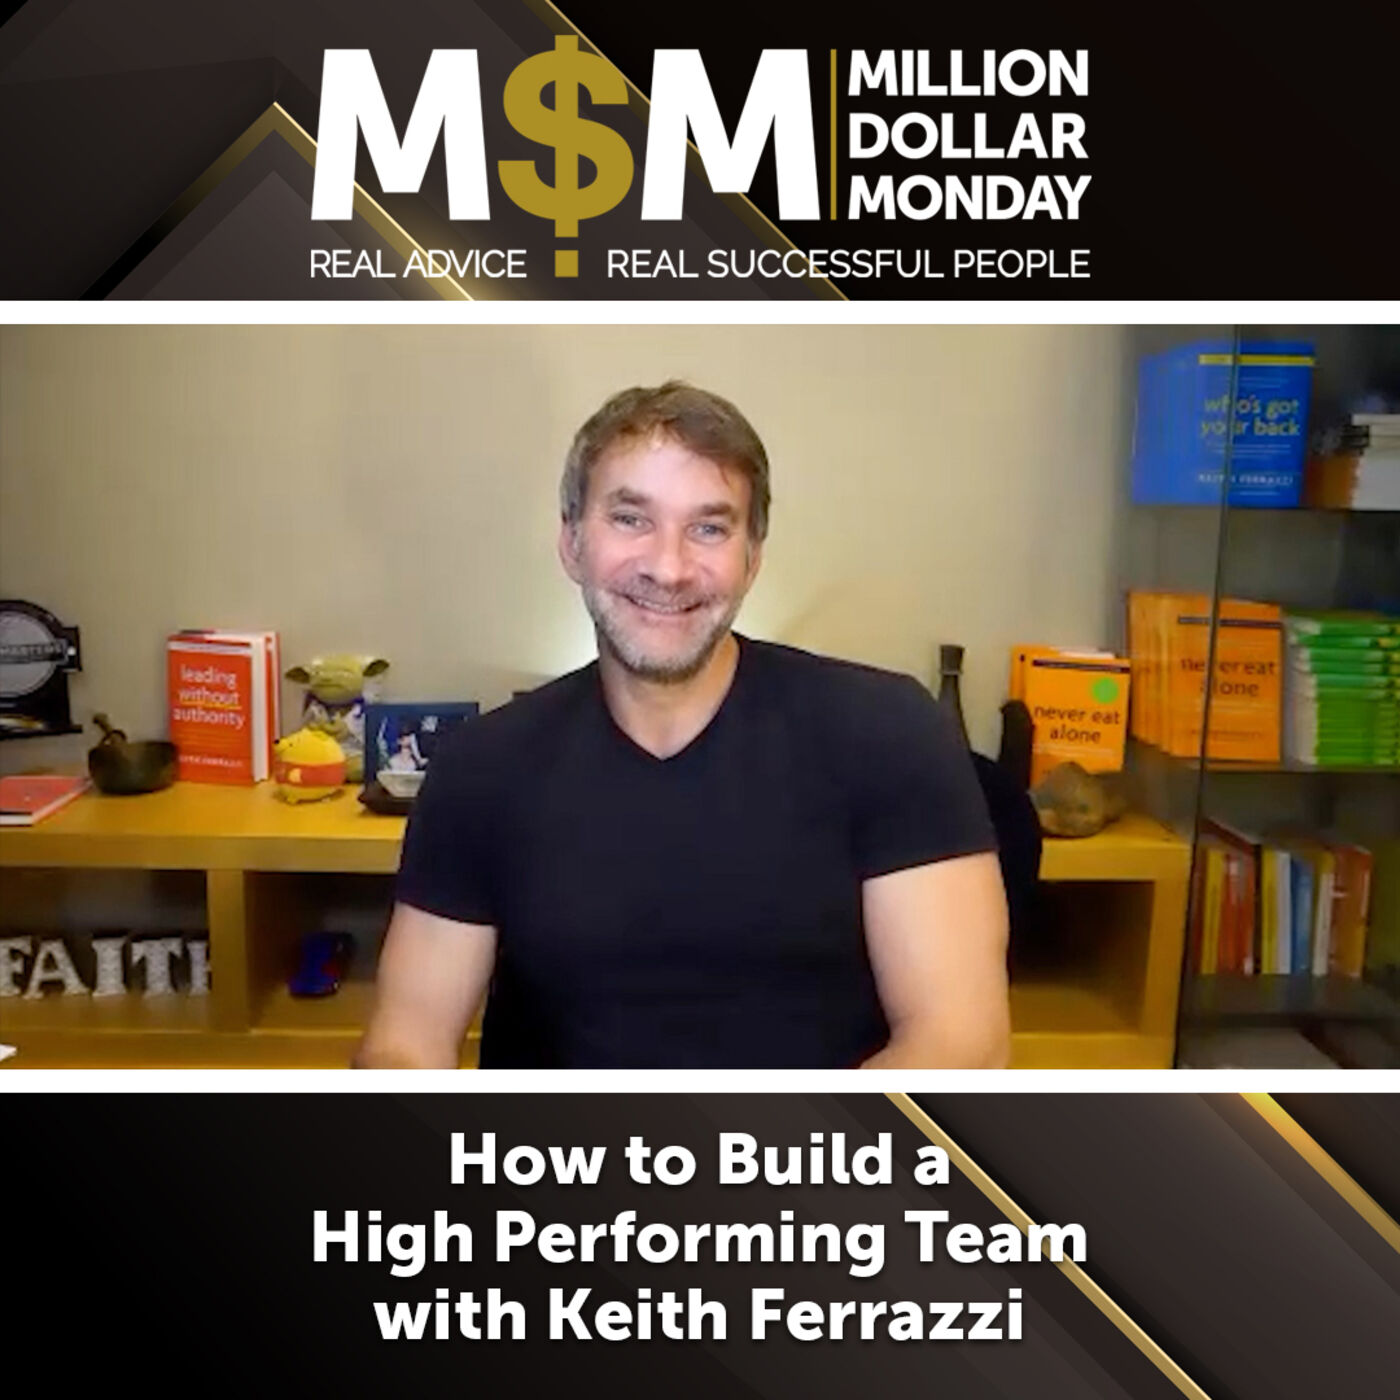 How to Build a High Performing Team with Keith Ferrazzi